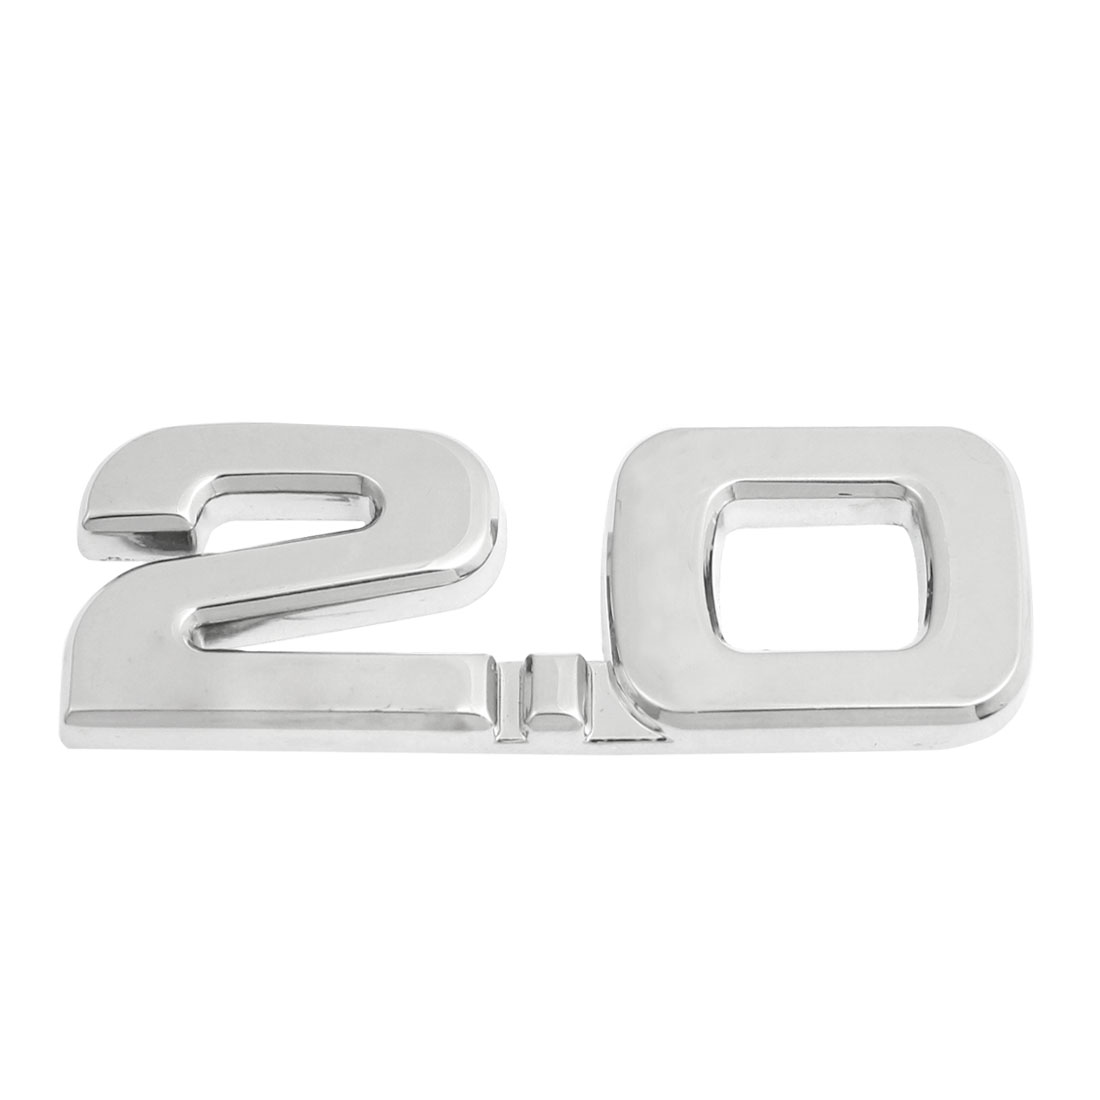 Car Autos Alloy 2.0 Decal Emblem 3D Badge Sticker Decoration Silver Tone